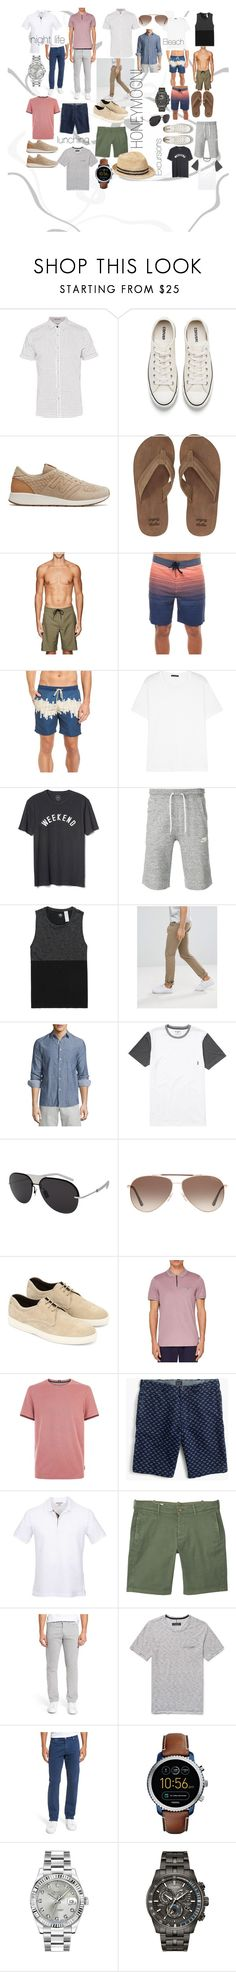 """""""DESTINATION Honeymoon!"""" by jastyleyou on Polyvore featuring Ted Baker, Converse, New Balance, Billabong, Outerknown, Hurley, Vestige, Acne Studios, Gap and NIKE"""